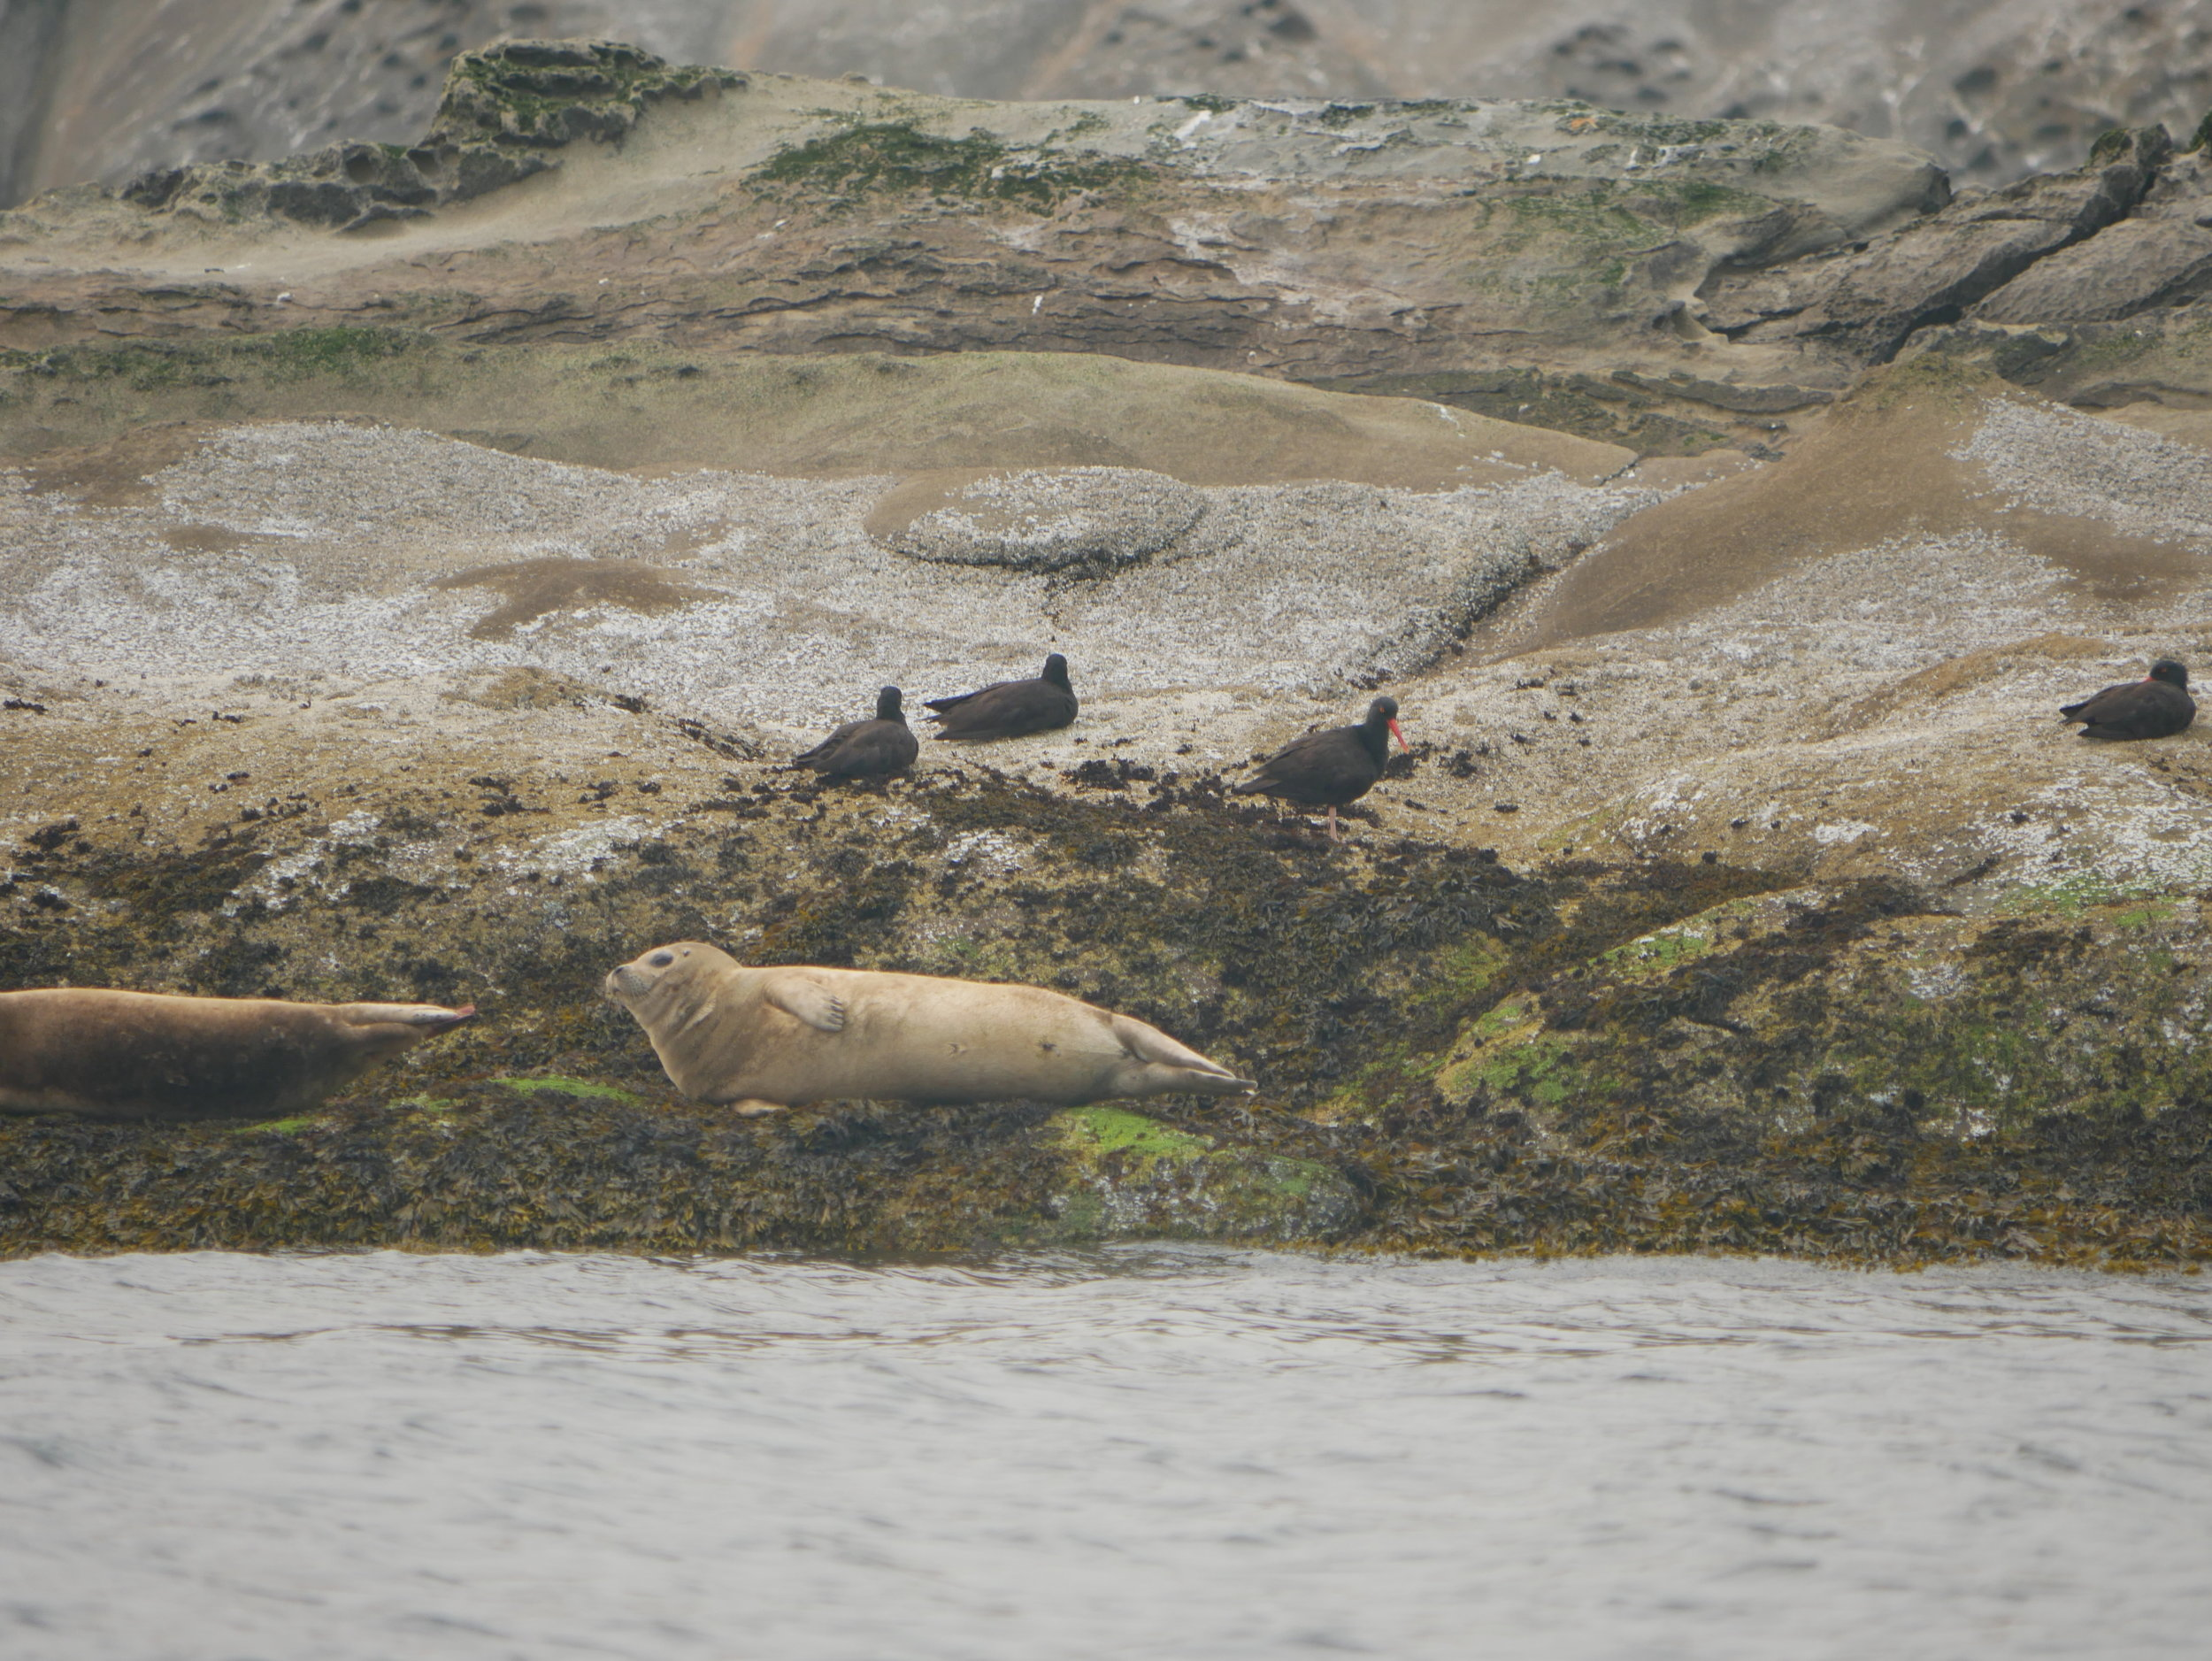 A harbour seal basking on the rocks with a few black oystercatchers popping by. Photo by Rodrigo Menezes